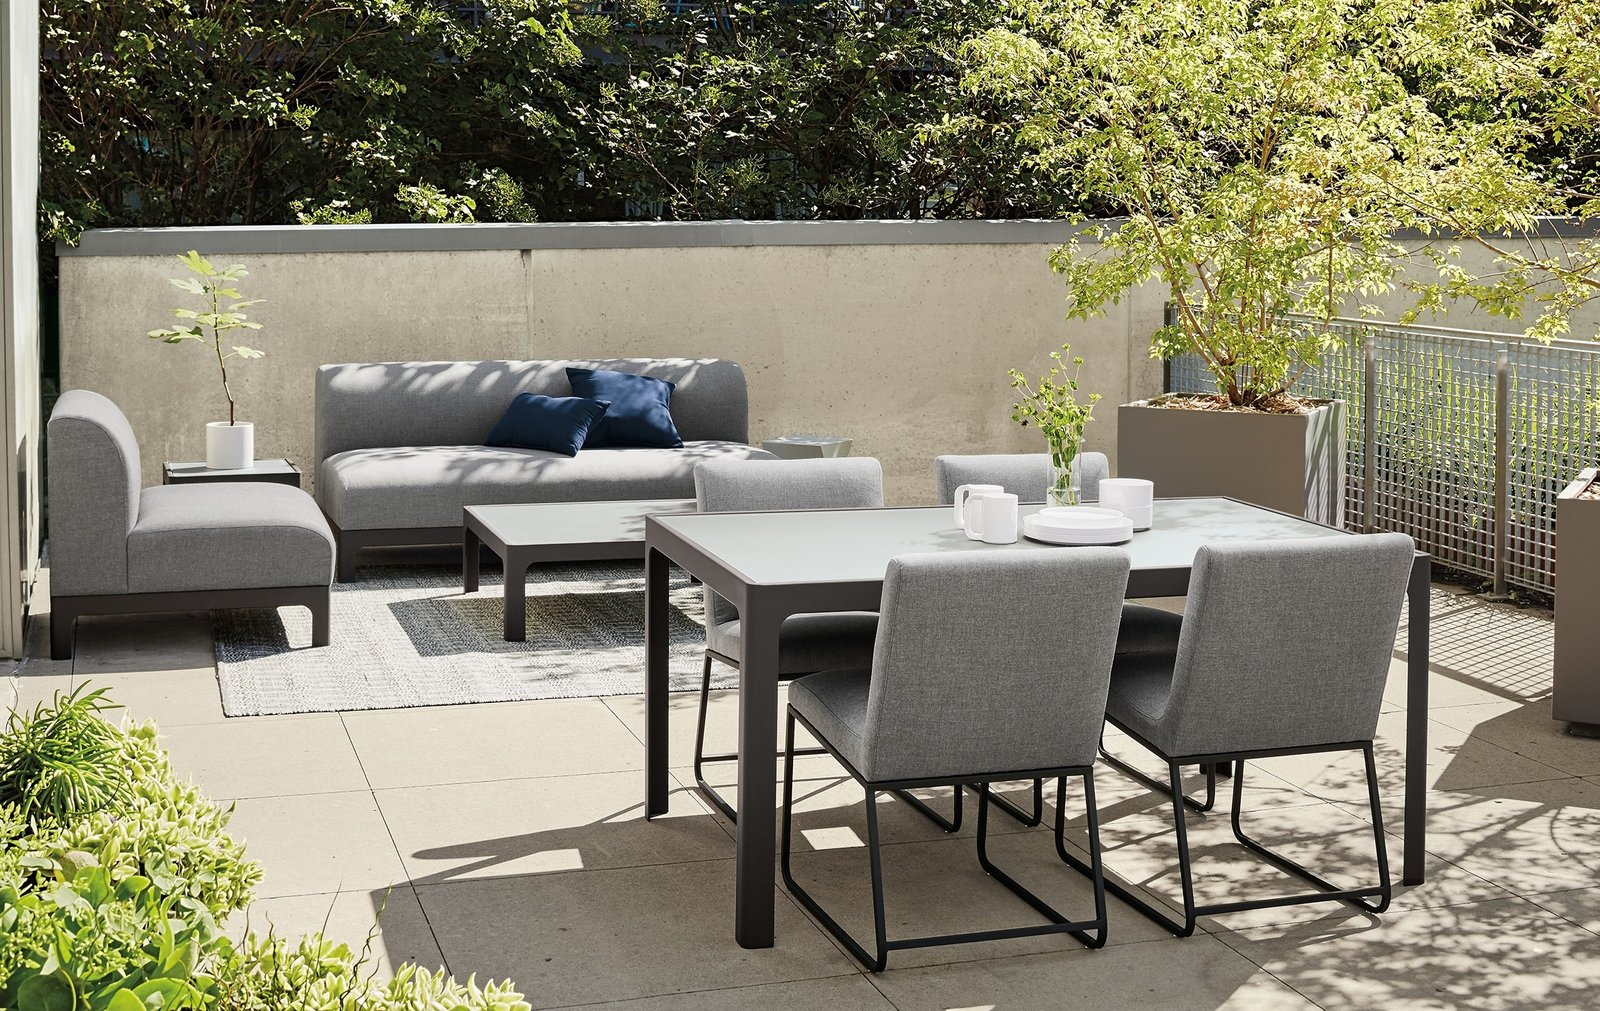 Photo 1 of 8 in Expert Design Advice: Outdoor Dining Spaces